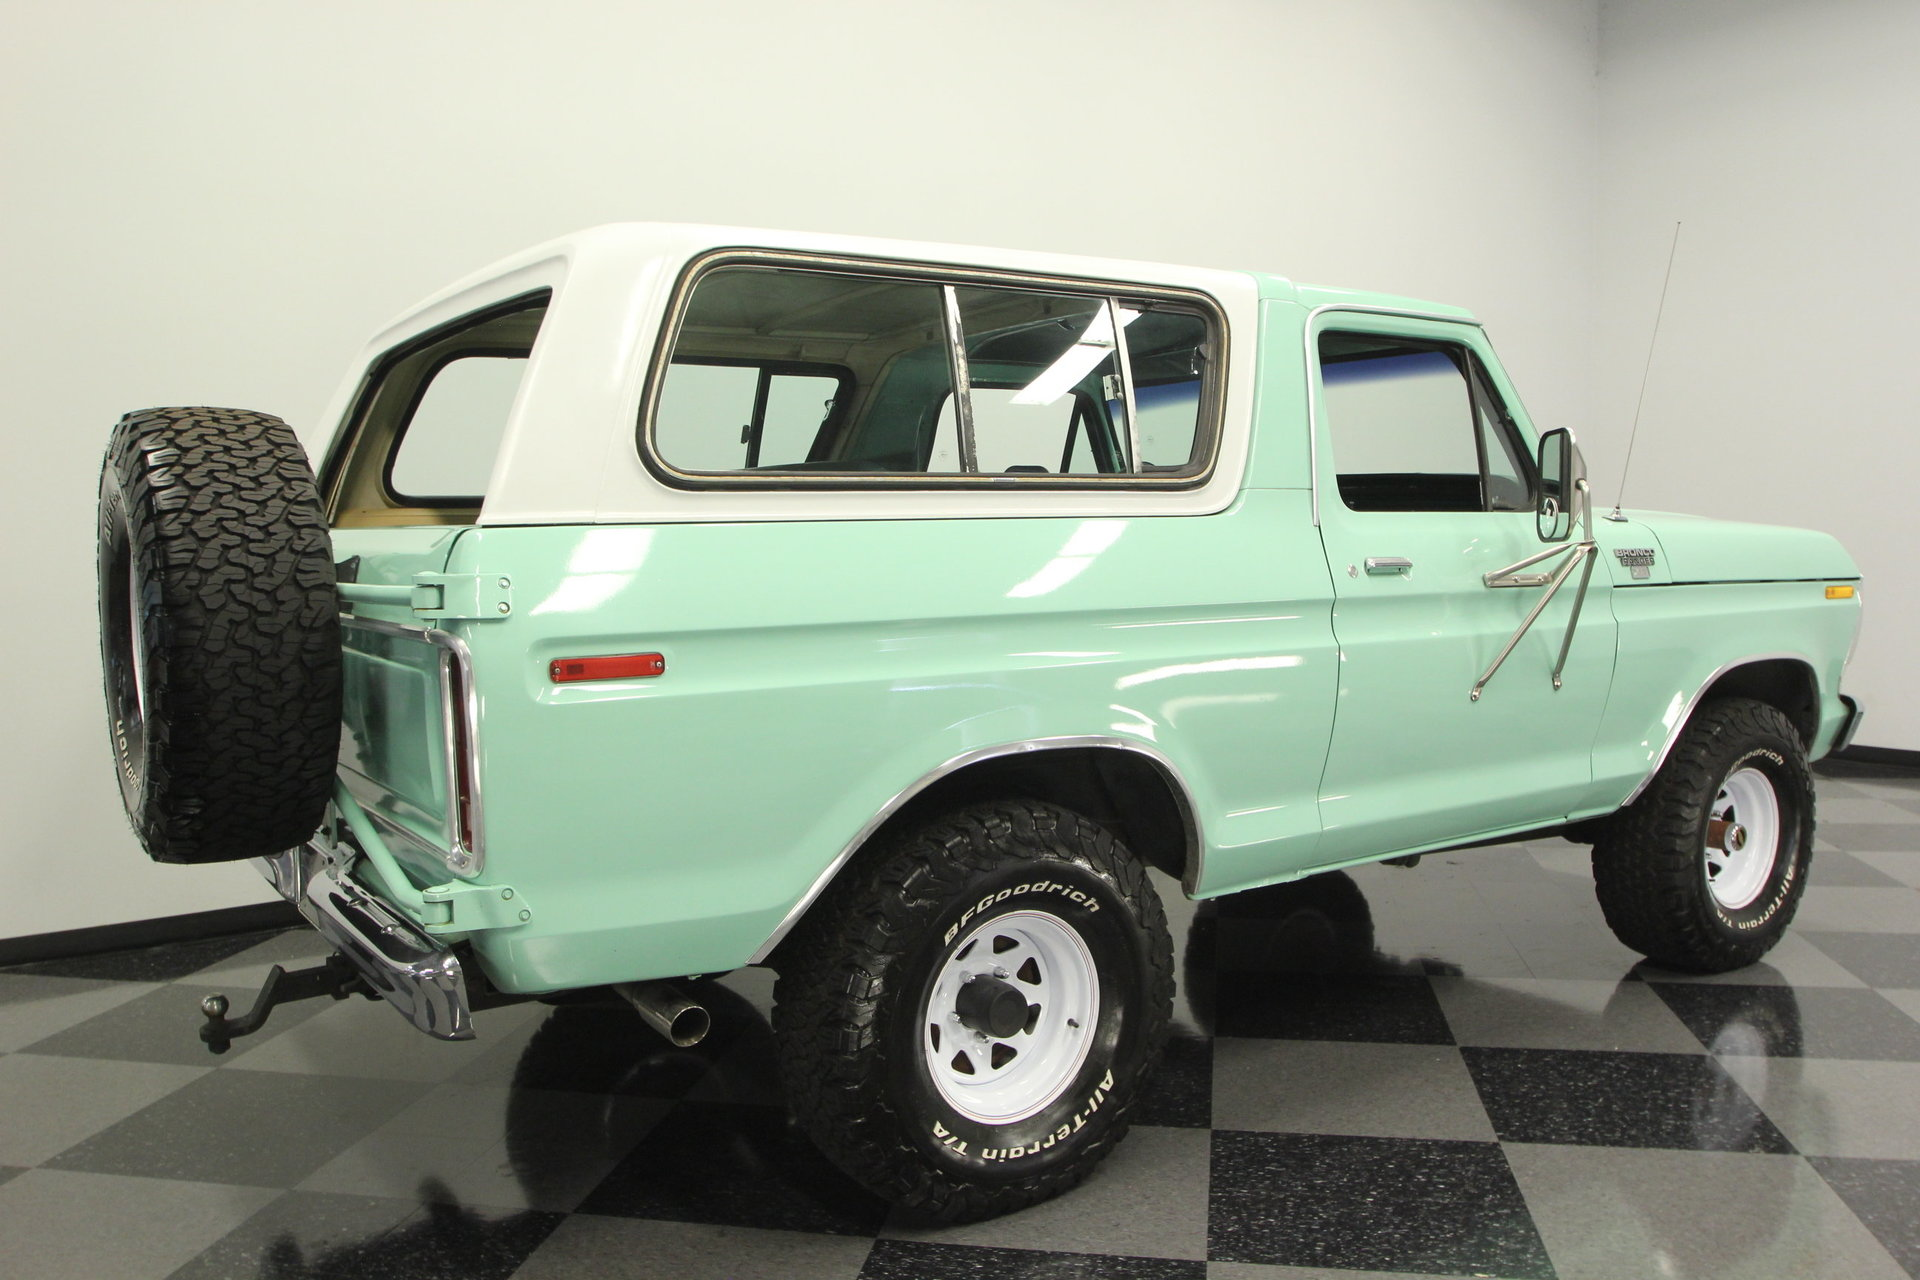 1978 Ford Bronco Streetside Classics The Nations Trusted 1949 4x4 Pickup Trucks View 360